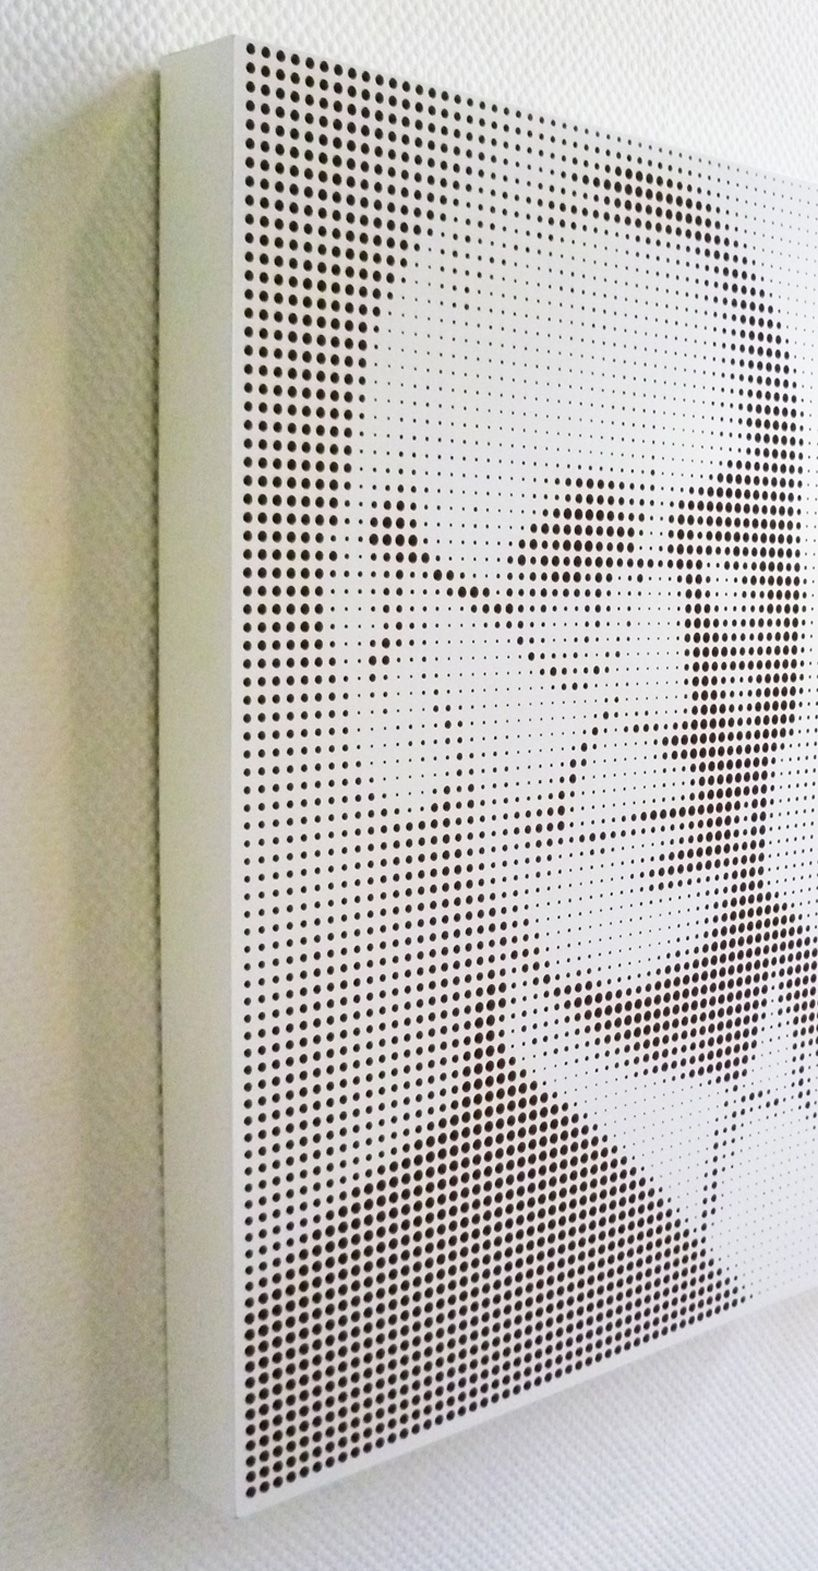 photocarver - CNC-milled photos that you can touch